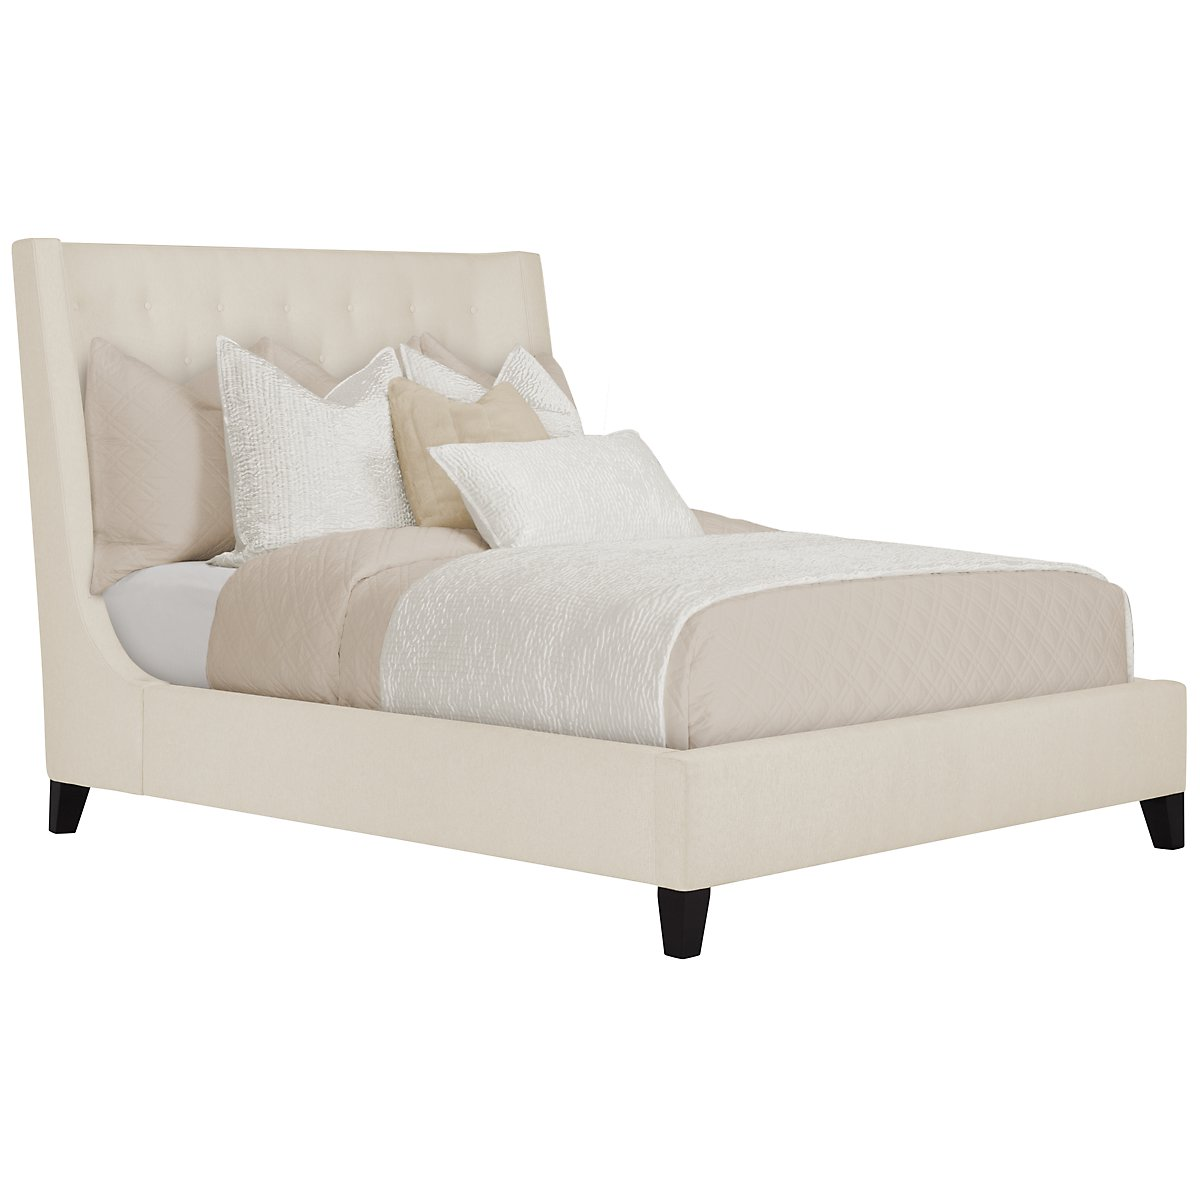 Maxime Light Beige Upholstered Platform Bed